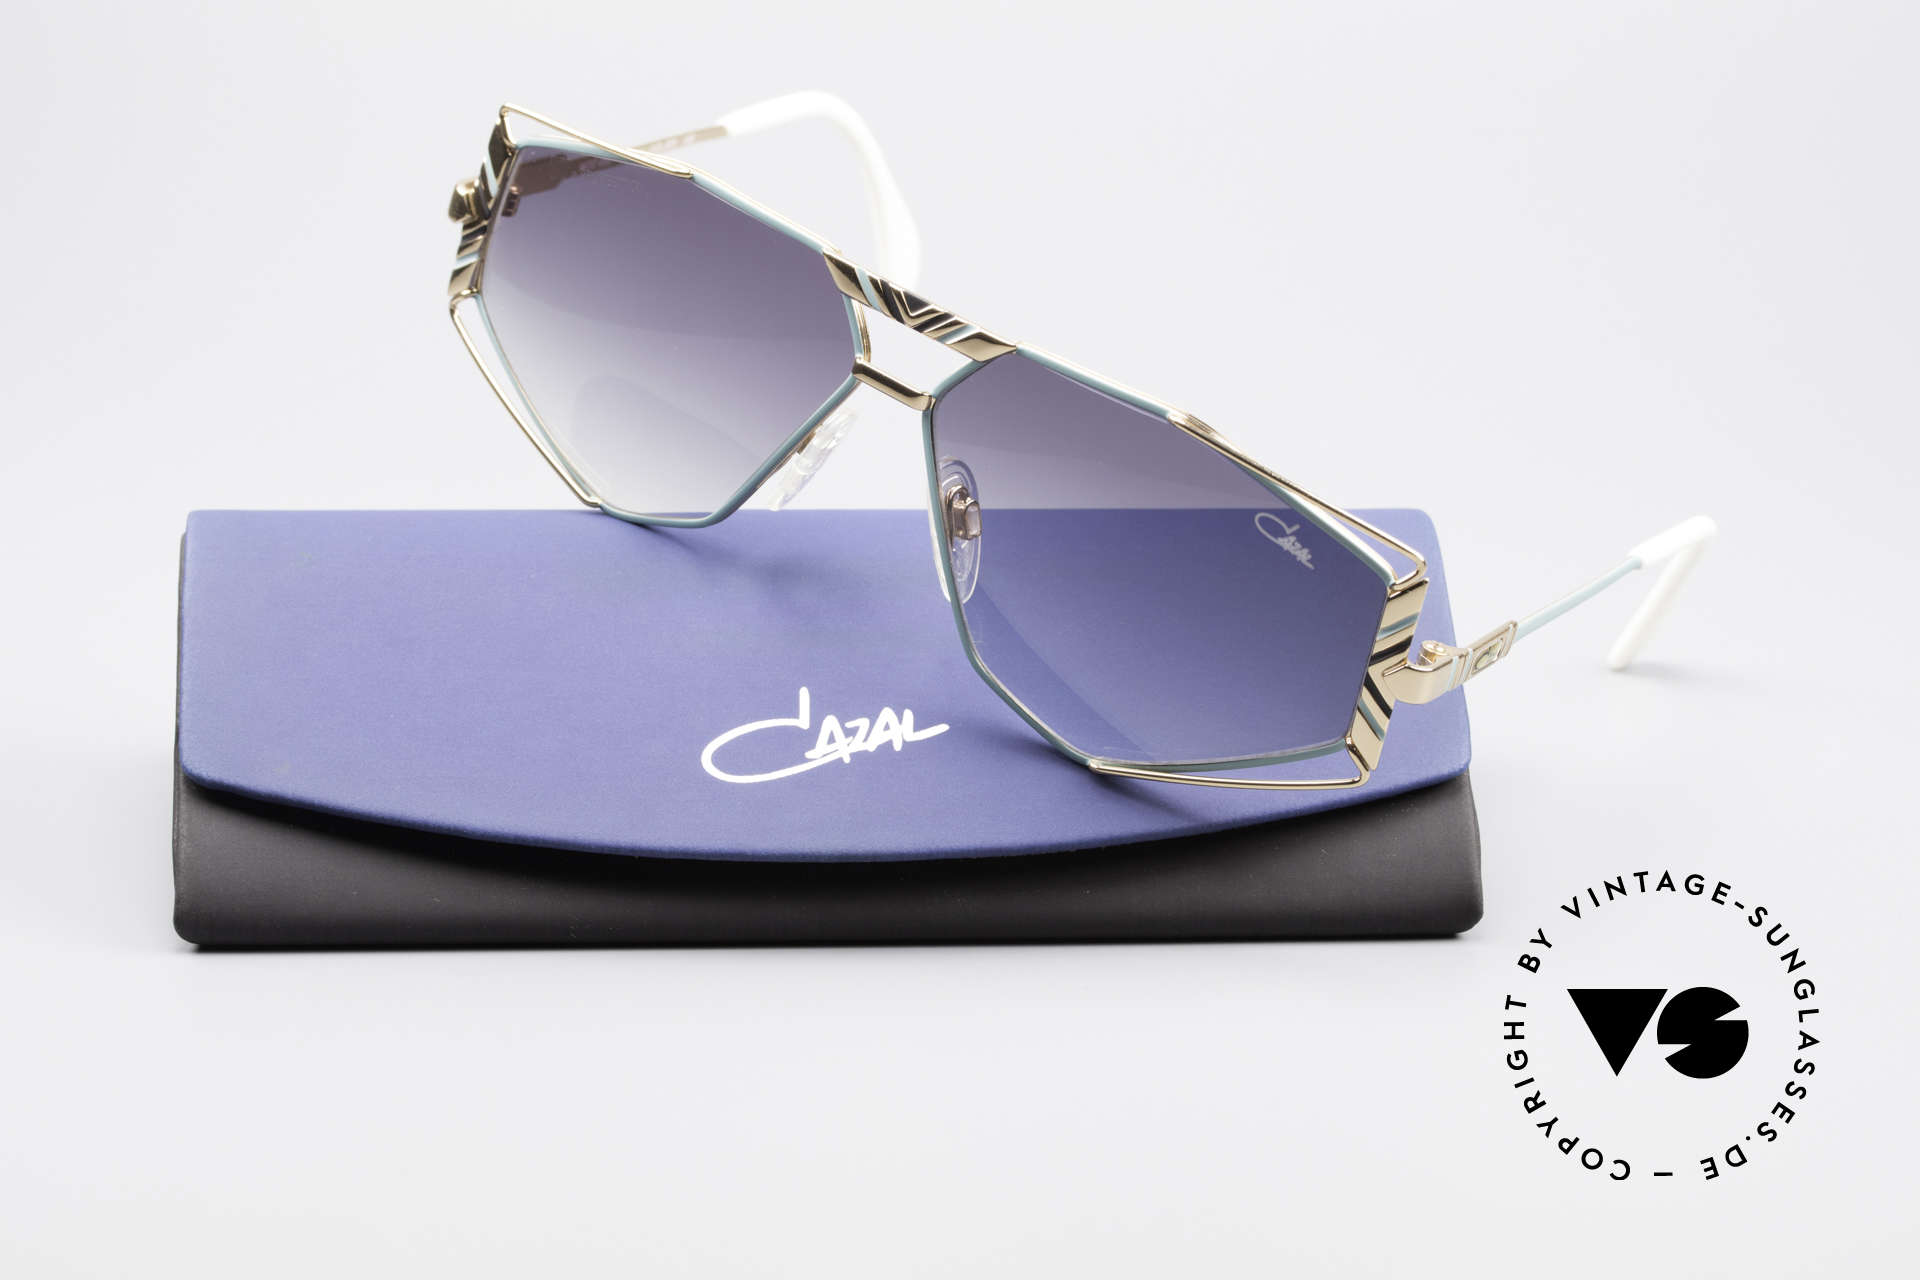 Cazal 956 Cari Zalloni Vintage Shades, gray-gradient sun lenses for 100% UV protection, Made for Men and Women